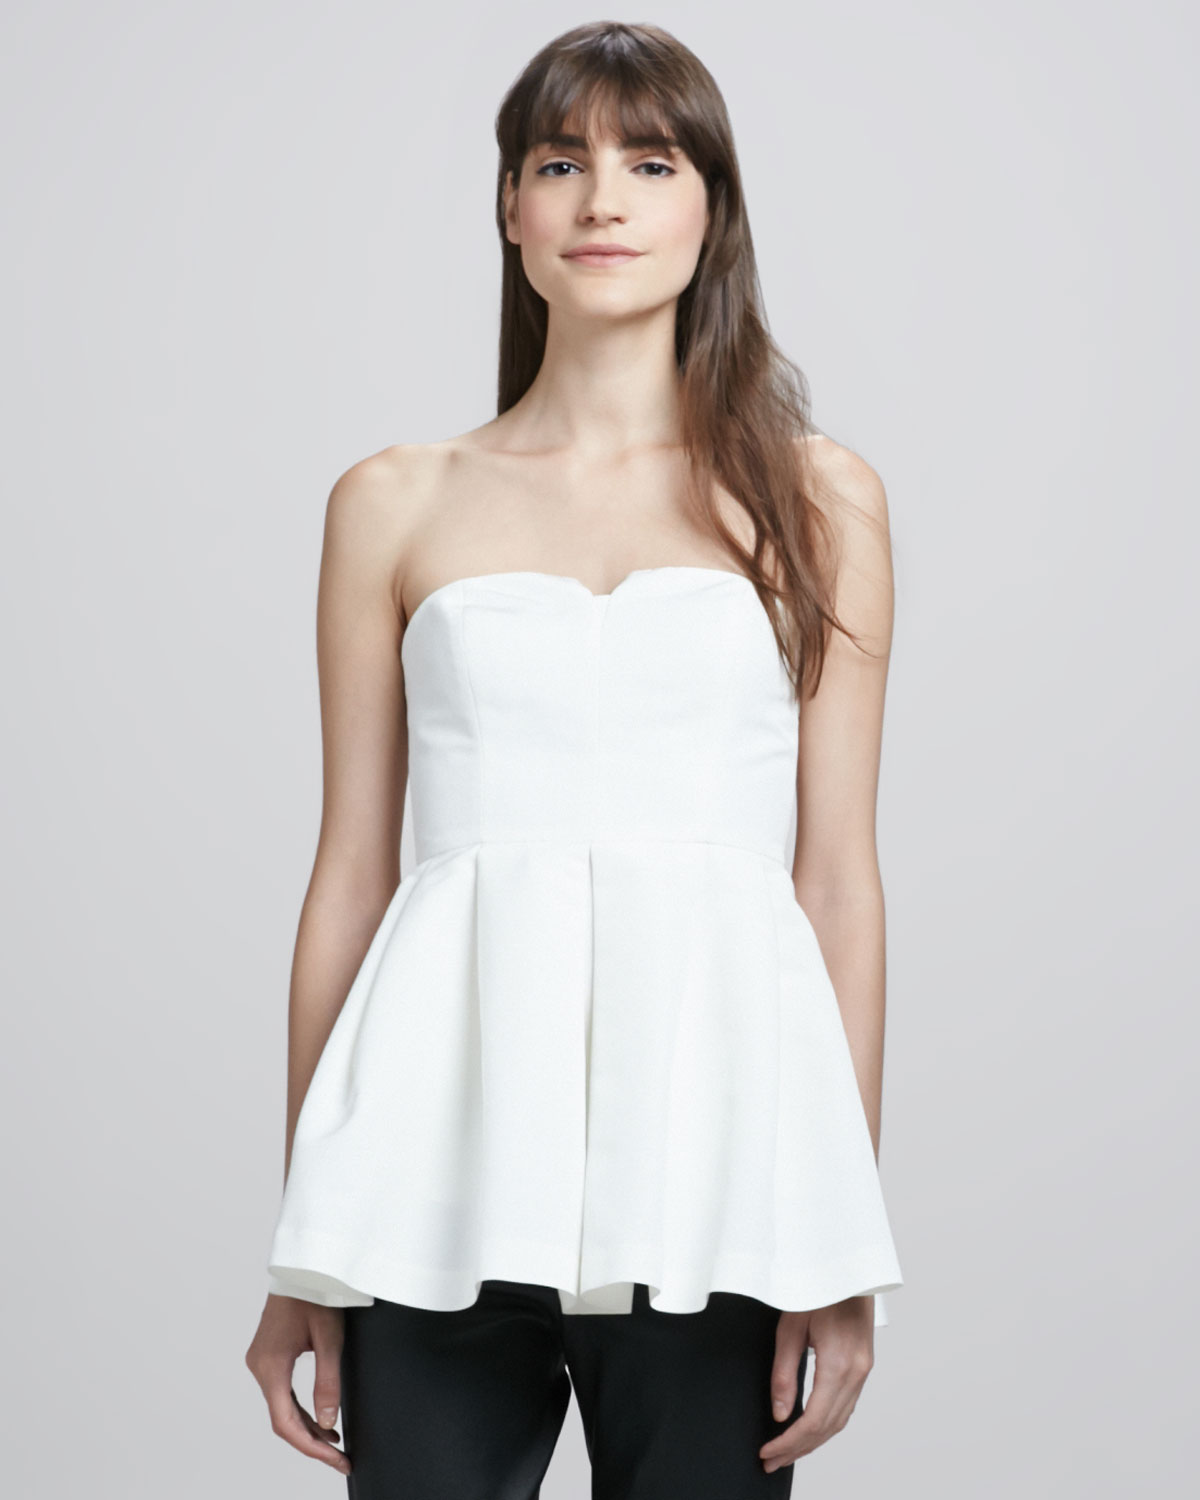 Shop for strapless peplum top online at Target. Free shipping on purchases over $35 and save 5% every day with your Target REDcard.